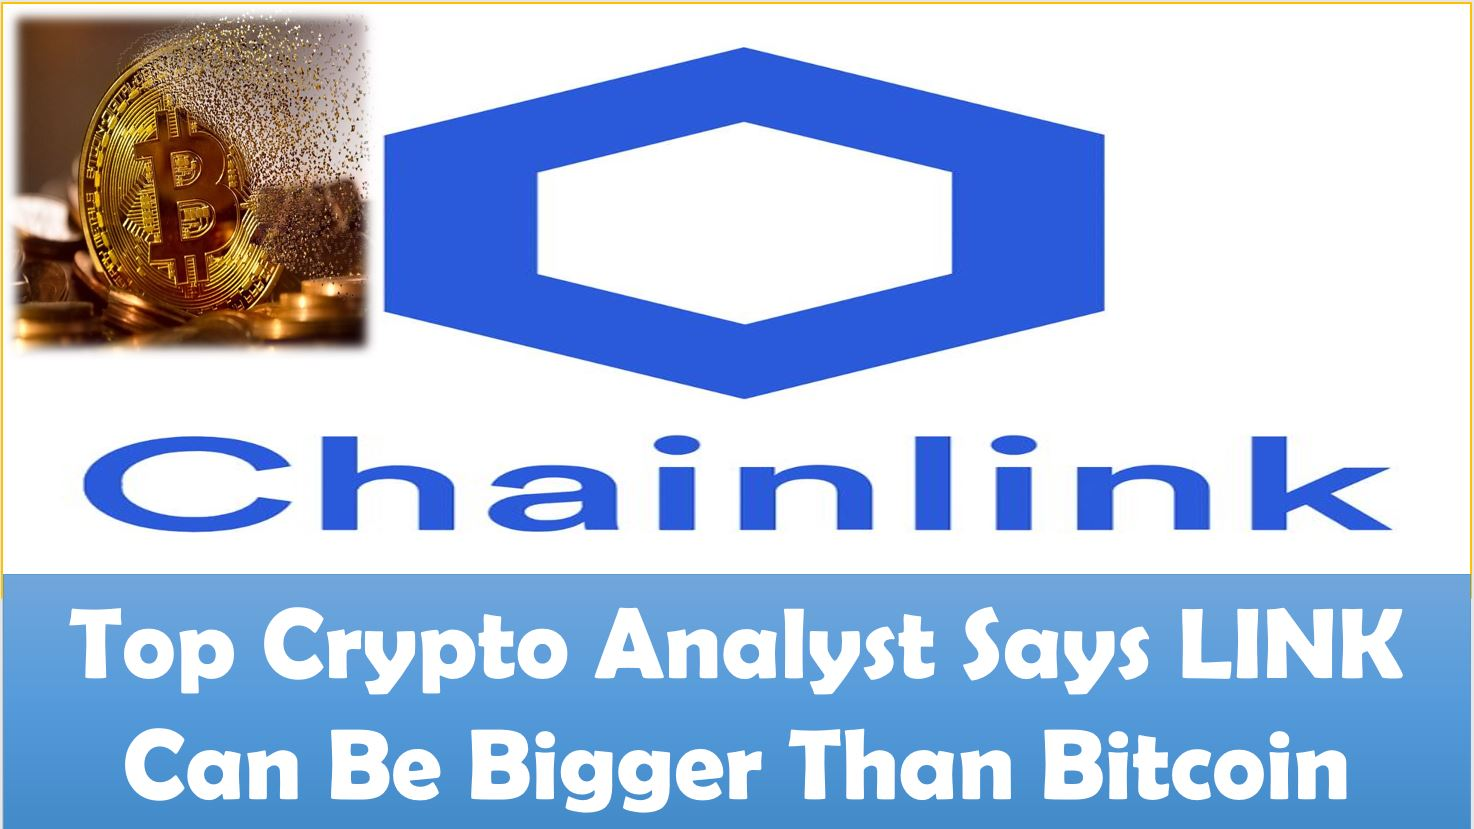 Top Crypto Analyst Says LINK Can Be Bigger Than Bitcoin